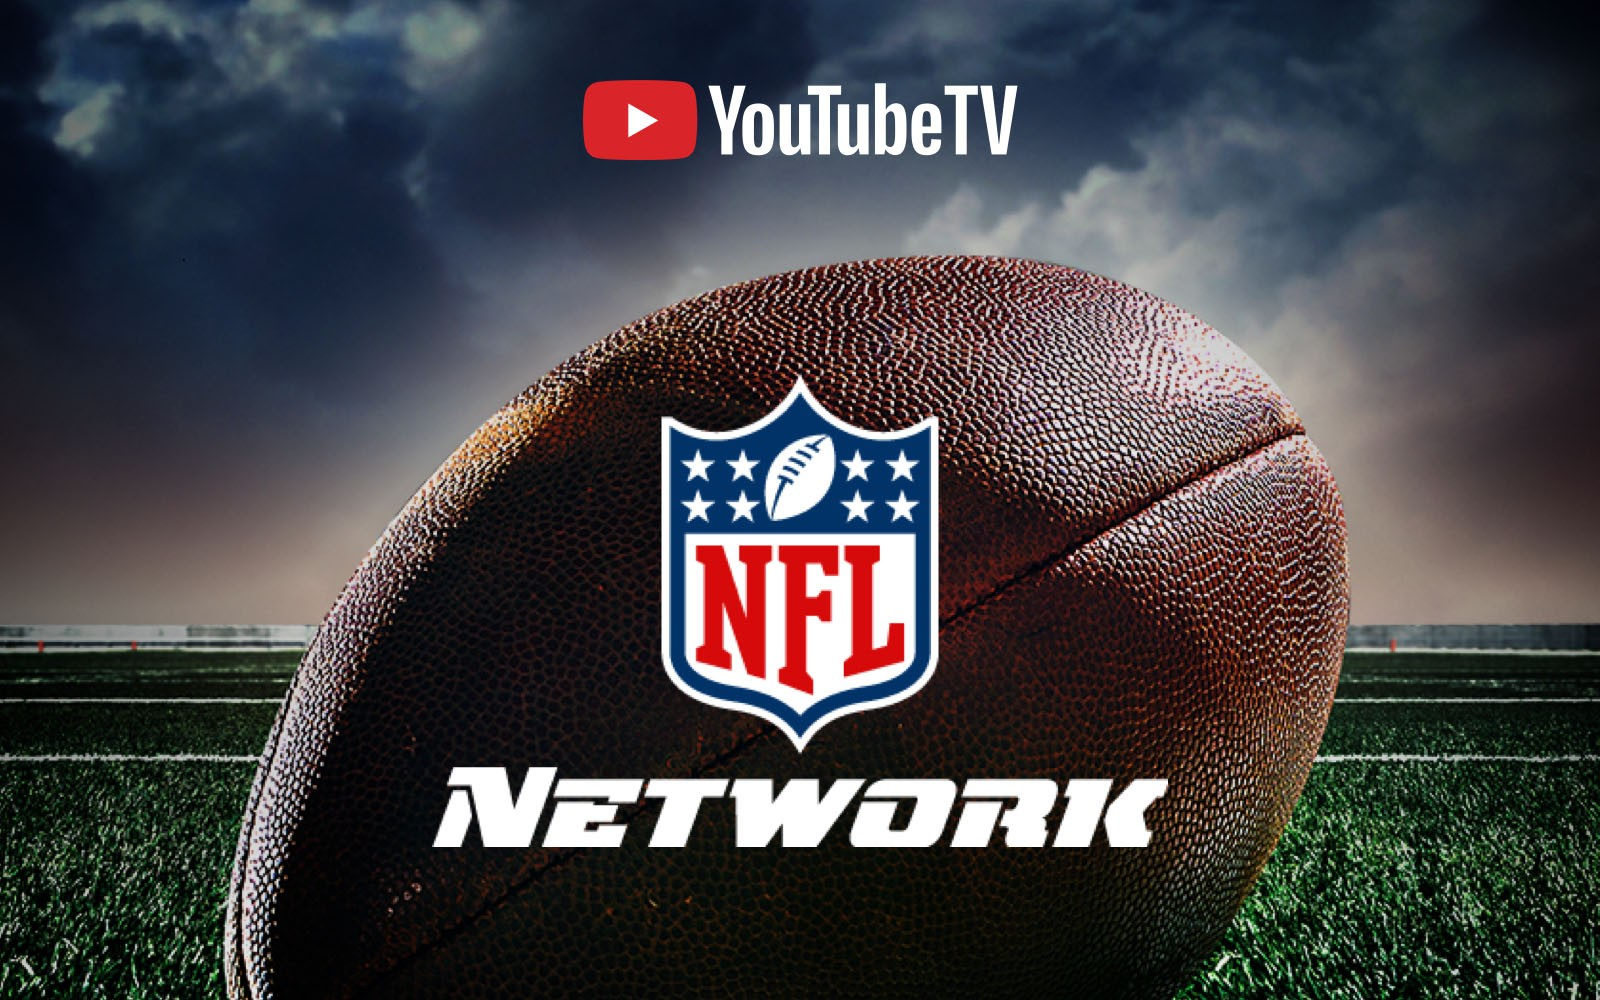 Youtube Tv Adds Nfl Network To Its Core Lineup Engadget